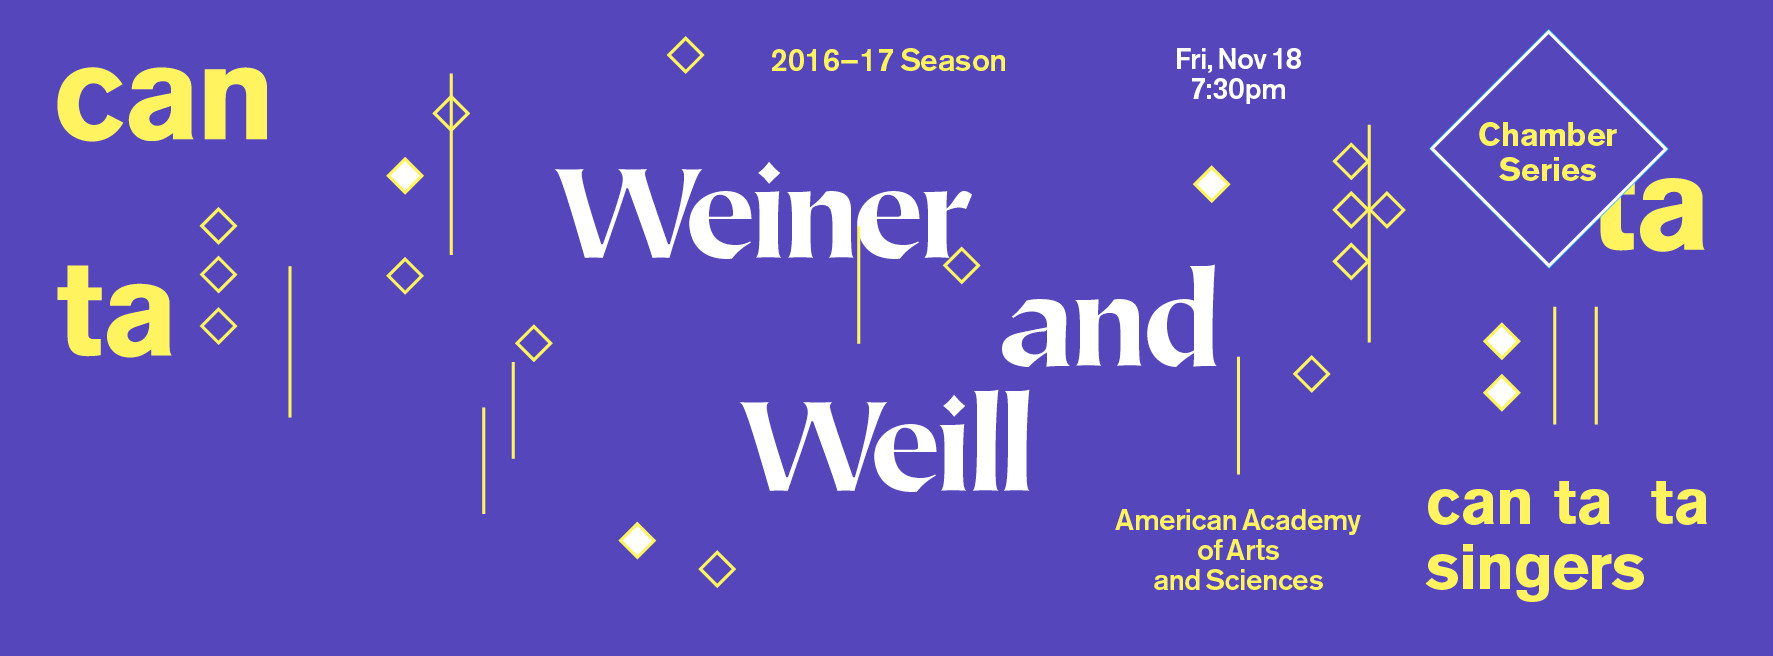 Chamber Series: Weiner and Weill